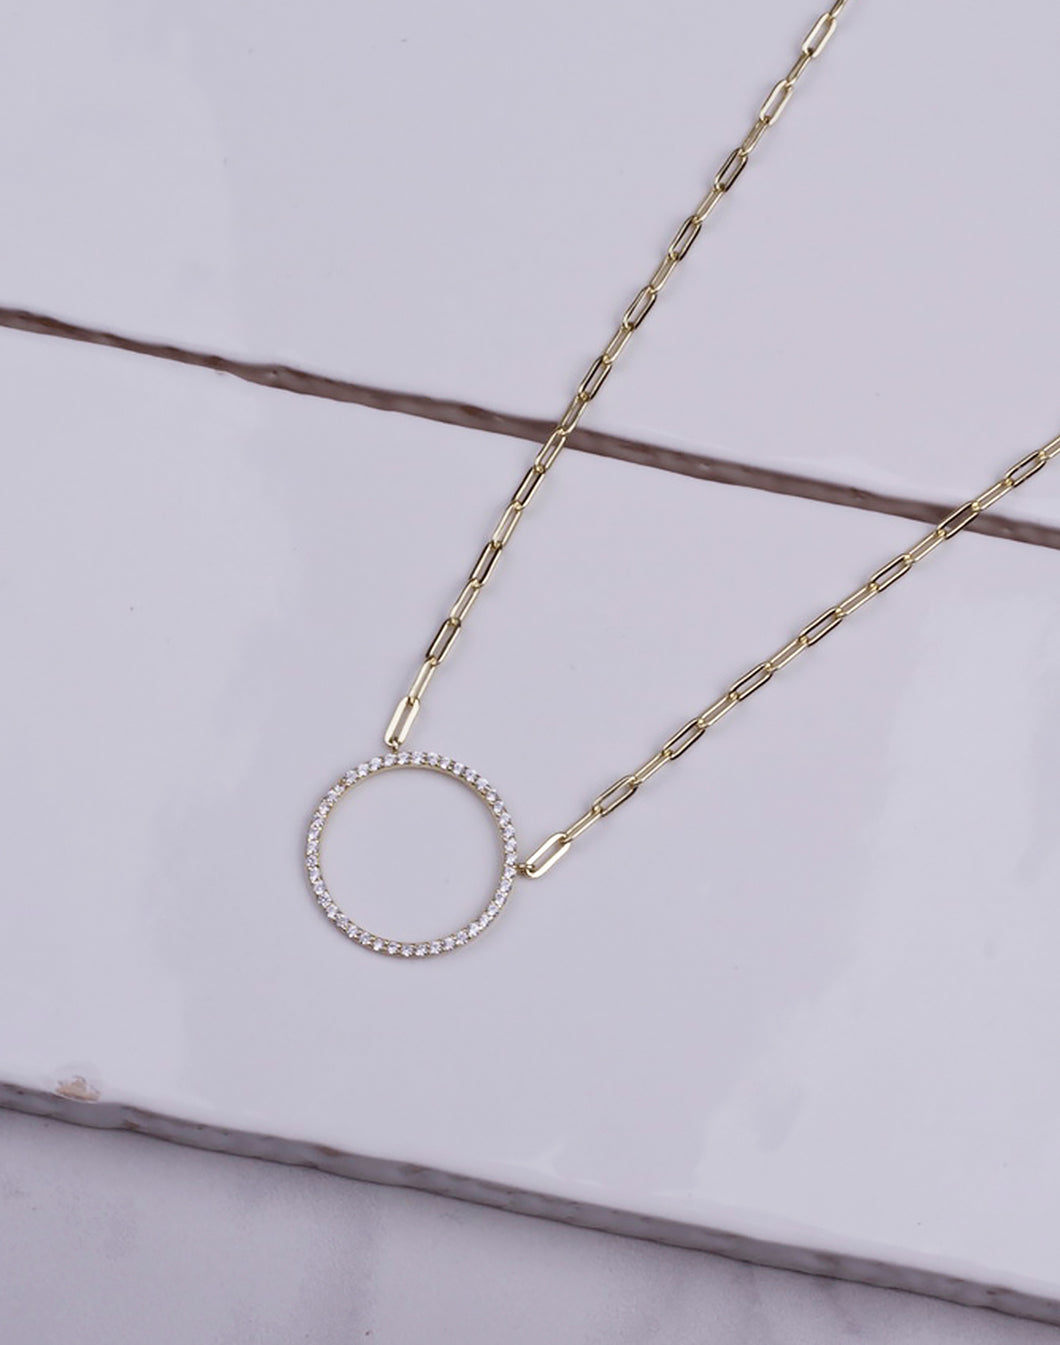 Large Hollow CZ Circle Chain Link Necklace